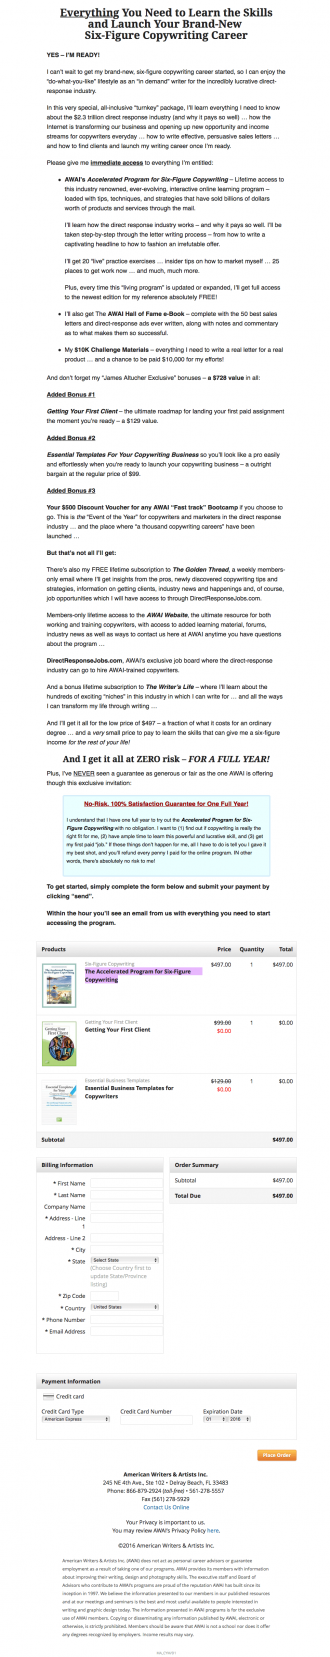 Accelerated Program for Six Figure Copywriting Order Page